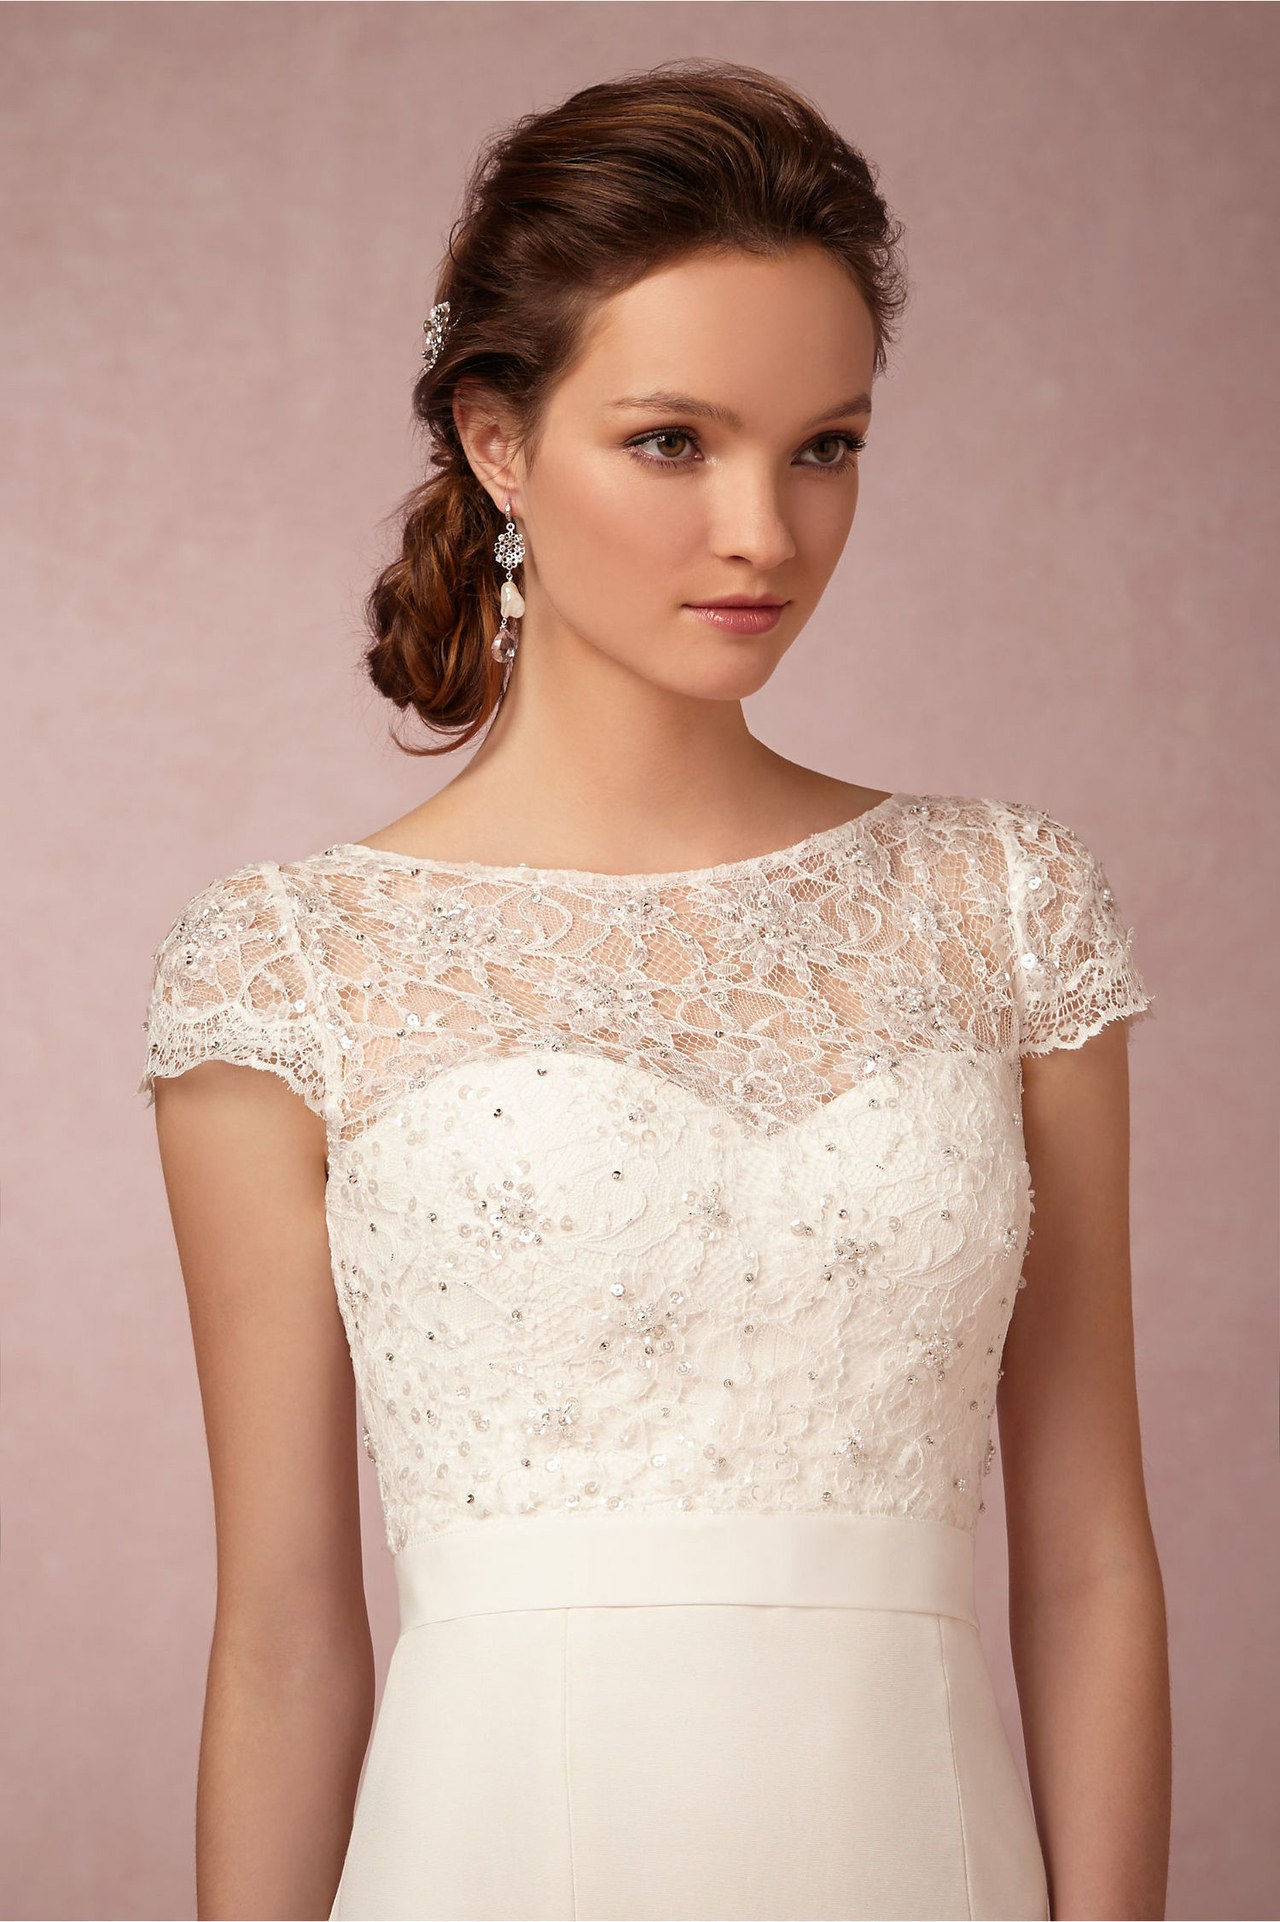 2d 2 in 1 wedding dresses wedding gowns mix and match wedding dresses bhldn 0430 courtesy